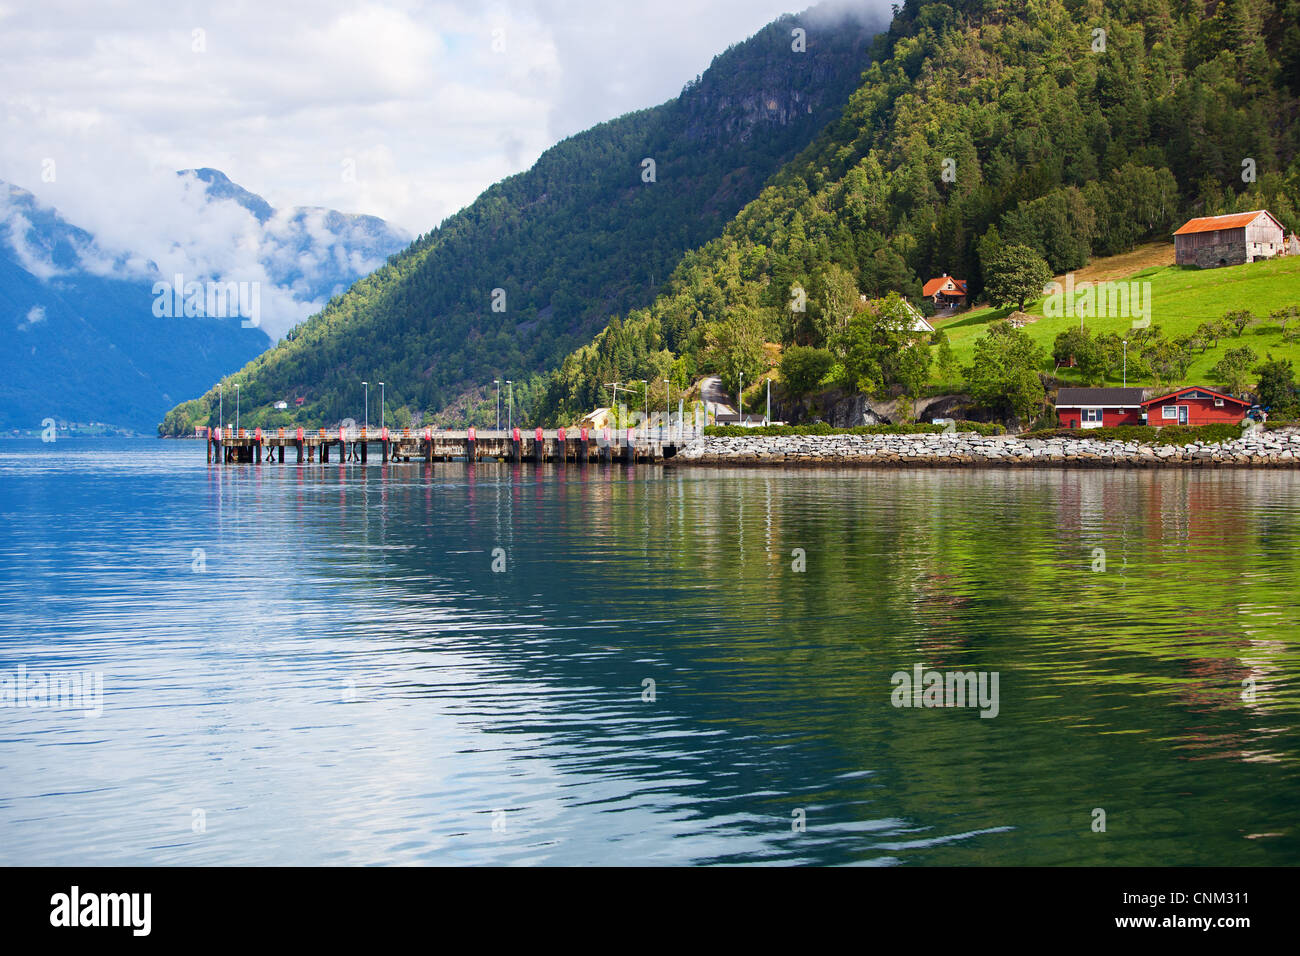 Moorage on fjord shore in Norway. - Stock Image